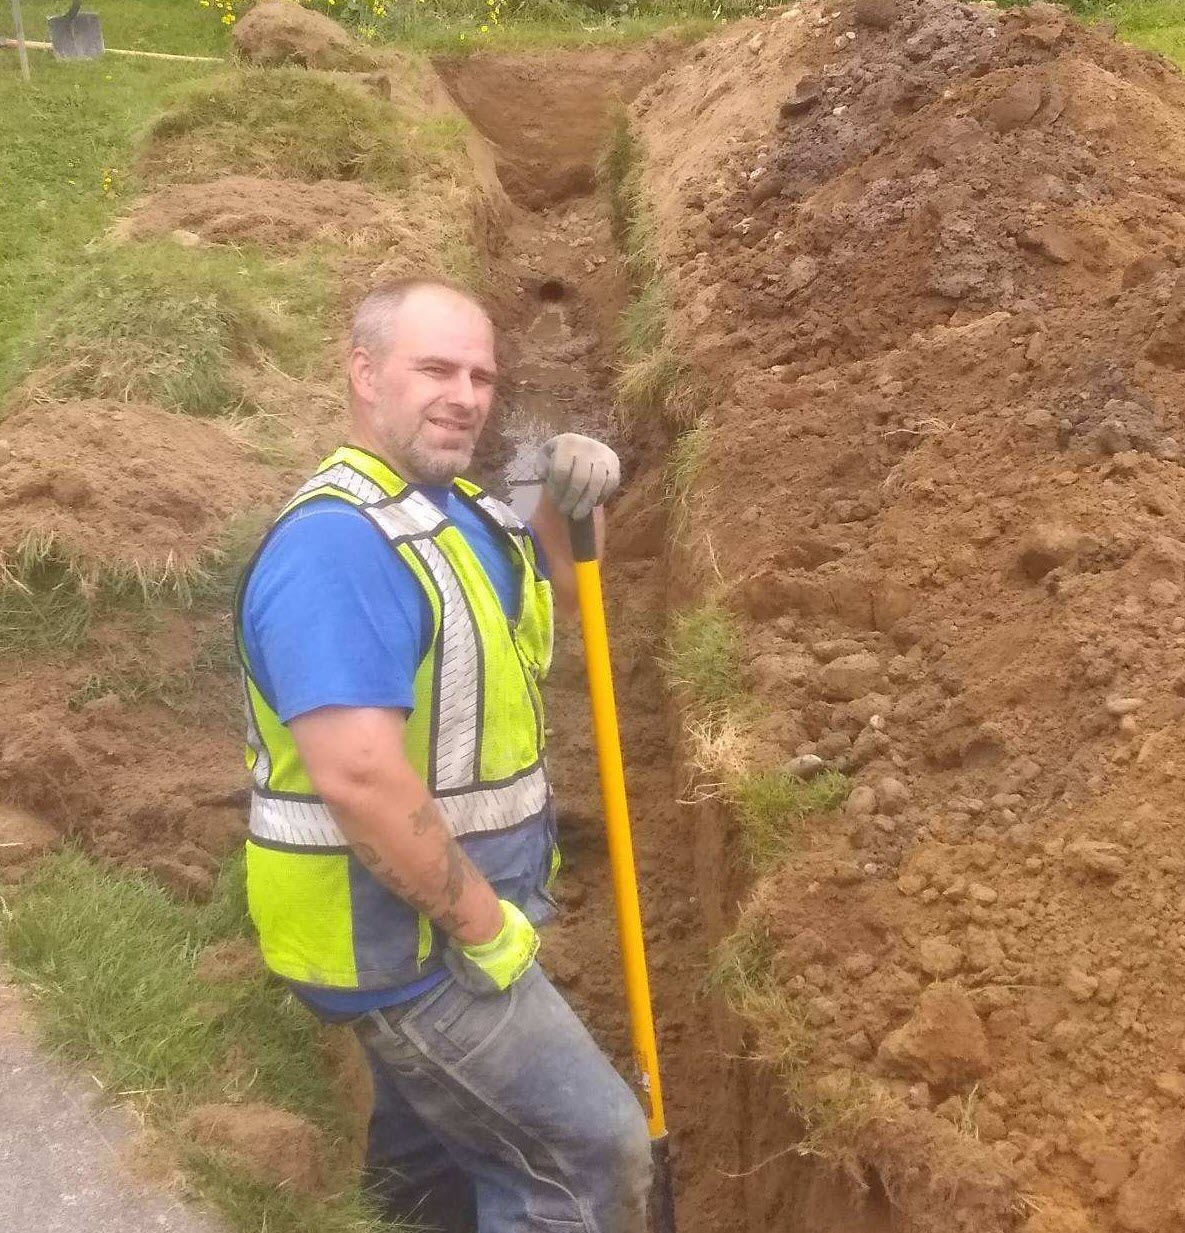 Do You Need Assistance With Drain Field Installation In Sultan?